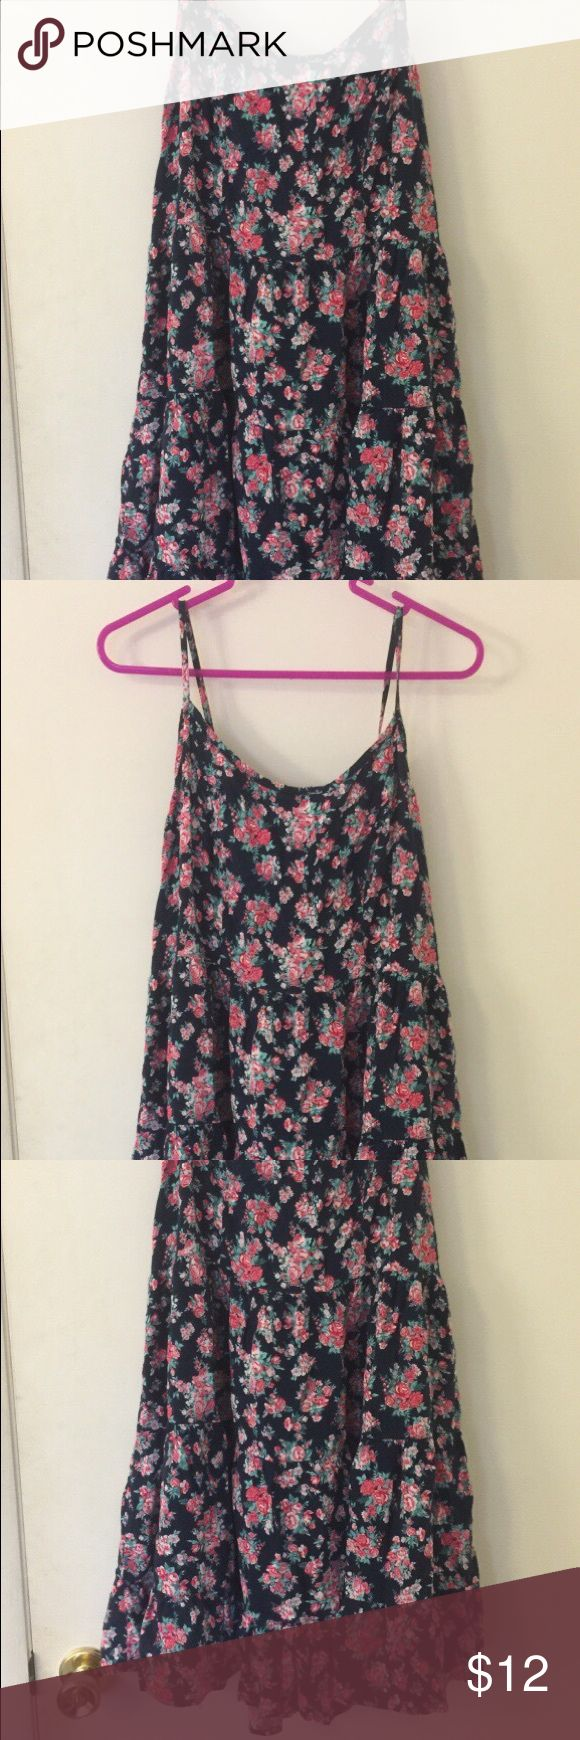 Forever 21 plus size floral cami dress Forever 21 plus size floral cami dress. Size 1X. Zip back and self-tie above zip area. Forever 21 Dresses Mini